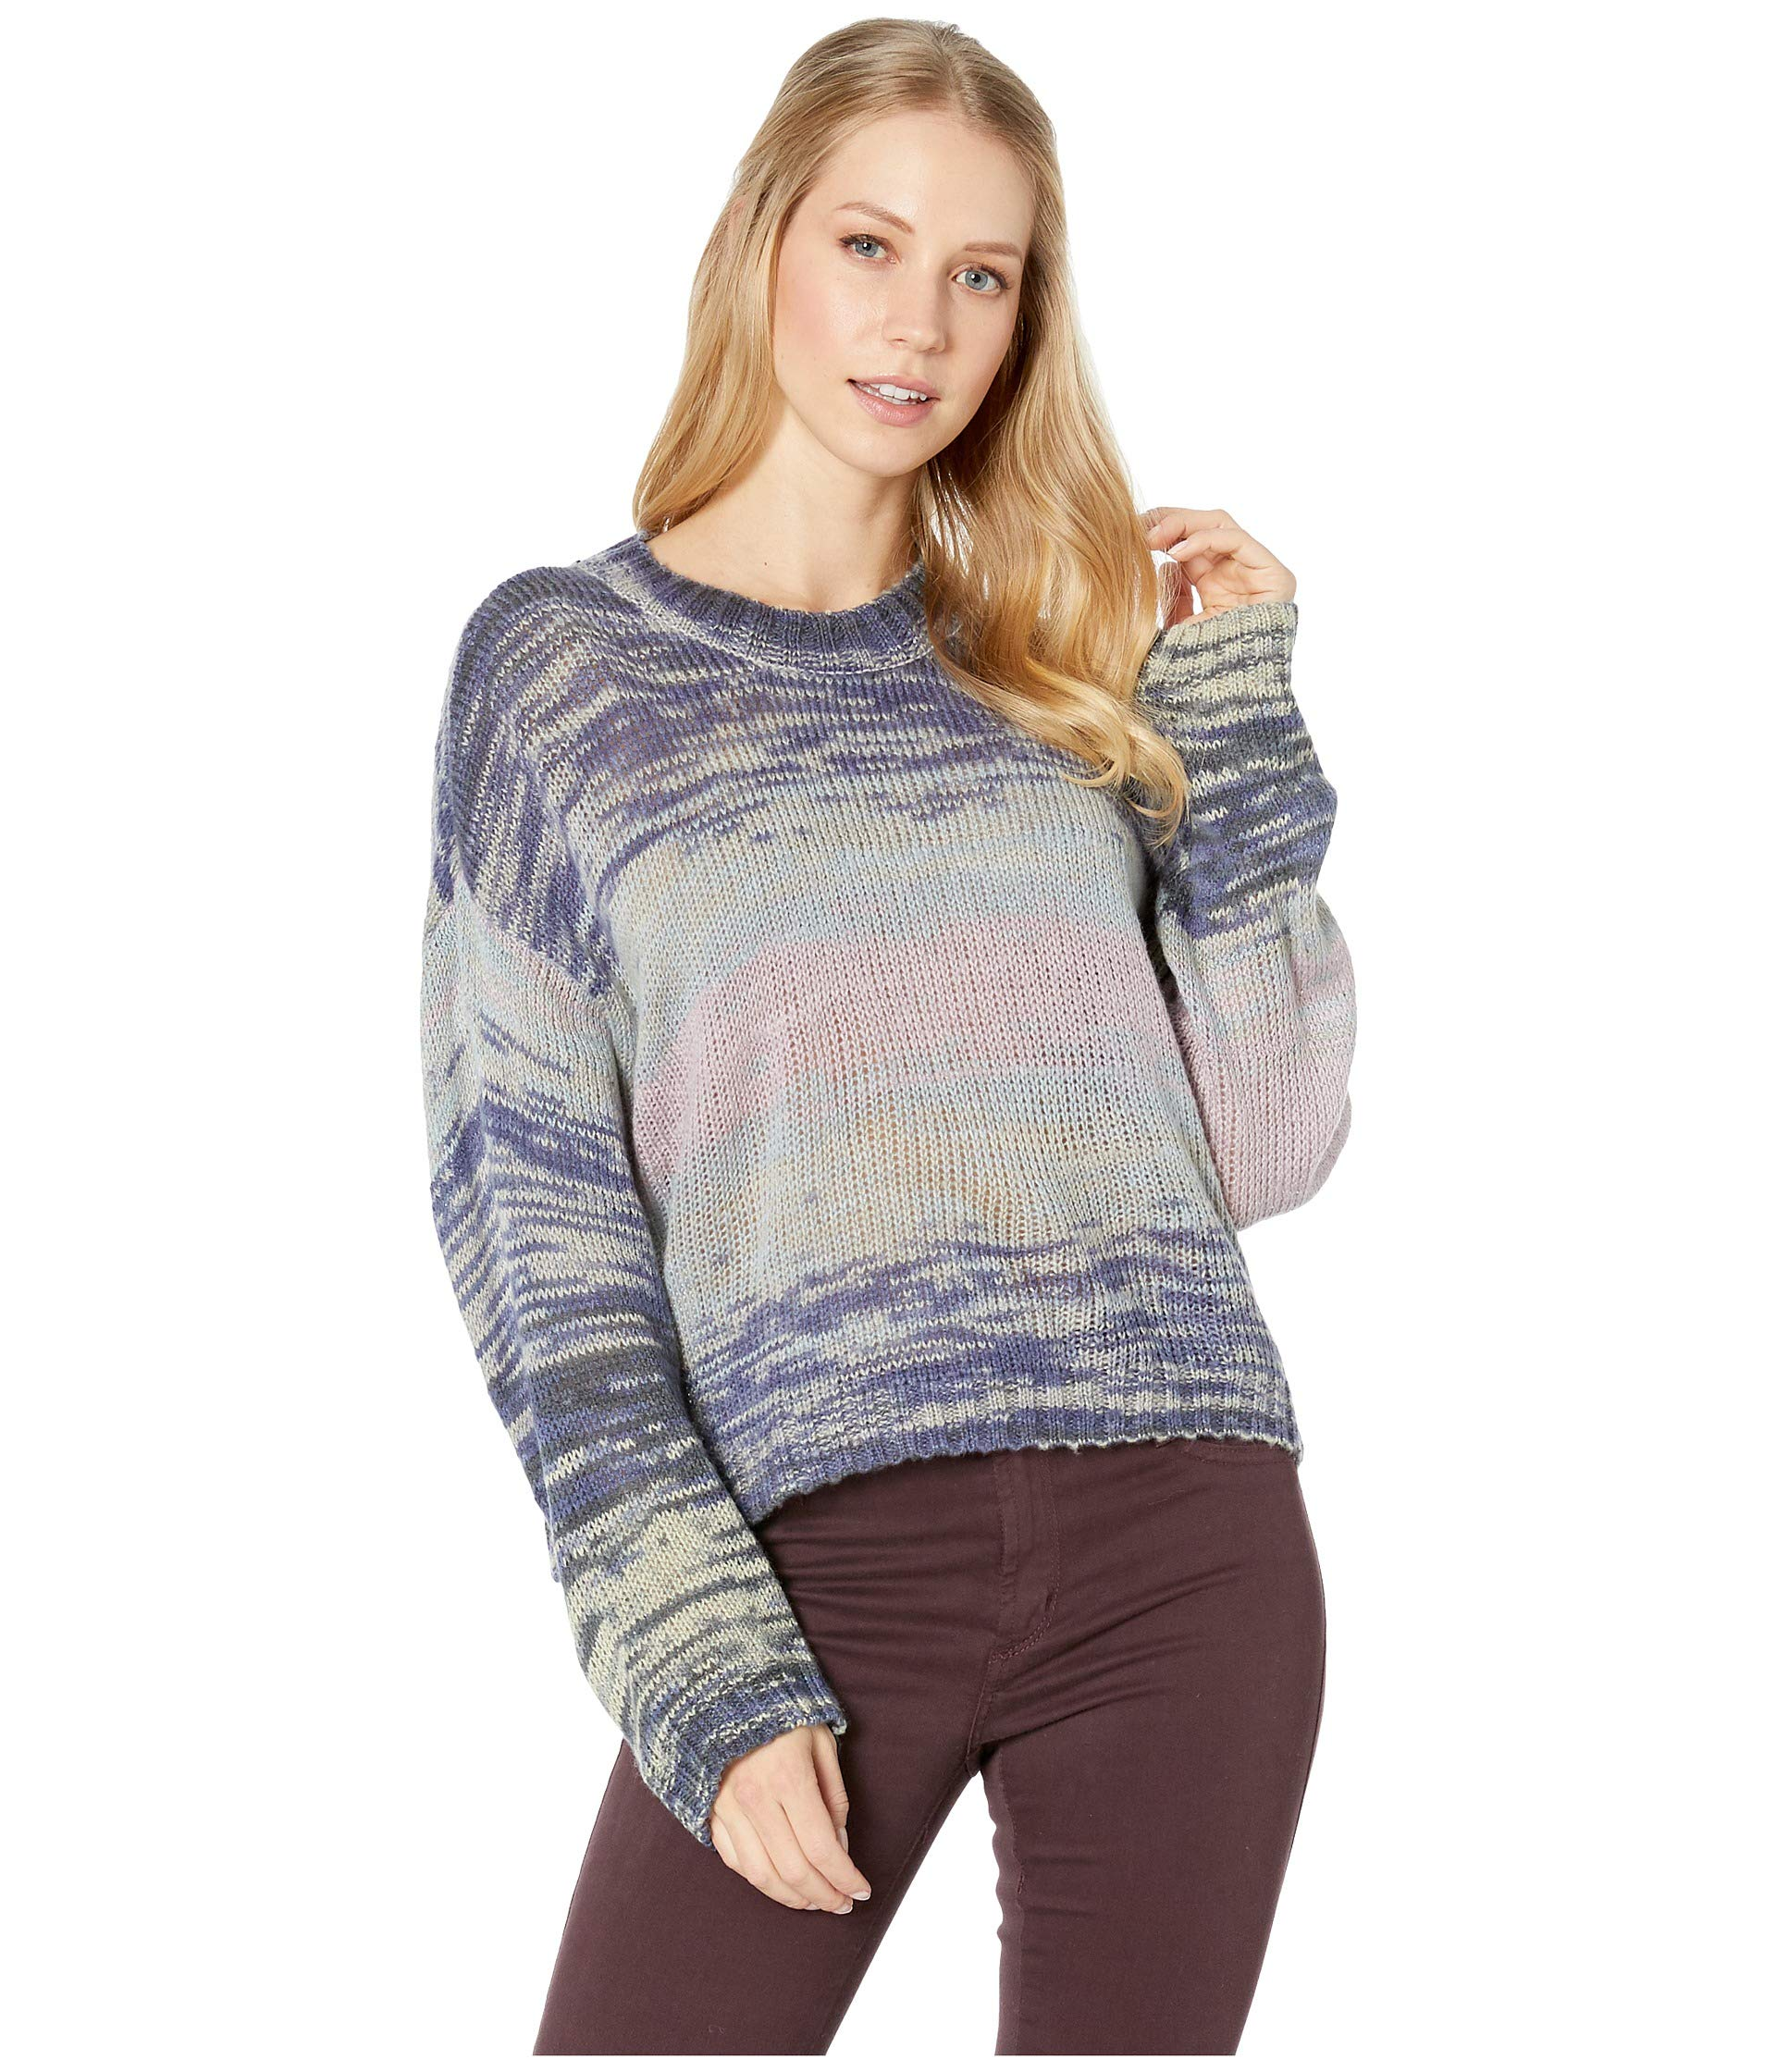 Volcom Womens Daze Go by Dolman Crew Neck Sweater, Multi, Extra Small by Volcom